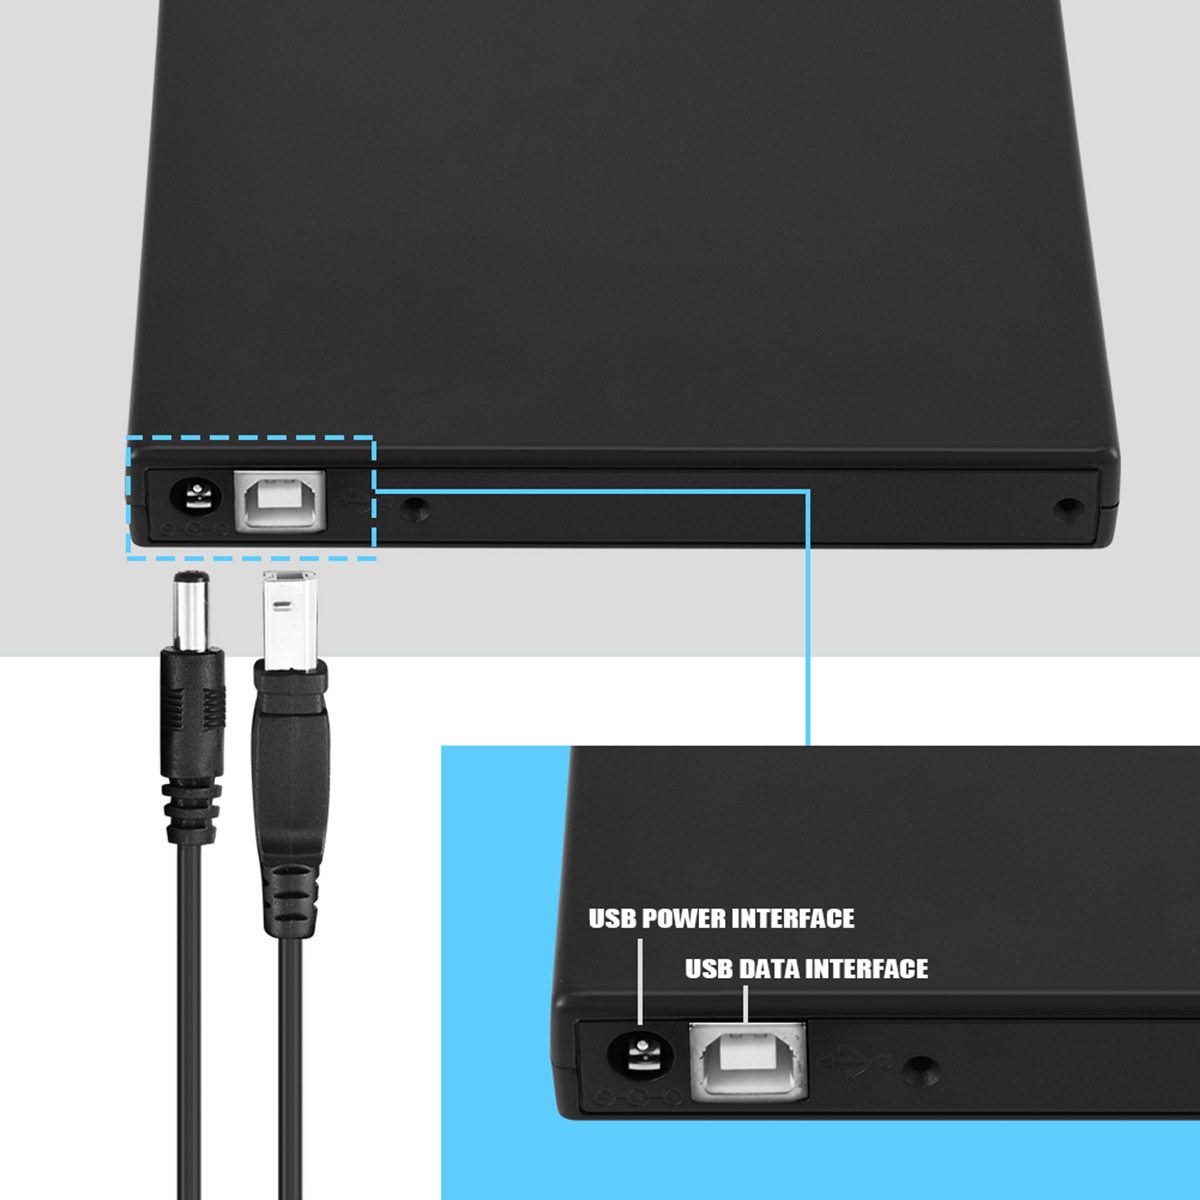 SOONHUA USB 2.0 Optical Drive Case Kit External Mobile Enclosure With USB Charging Cable And Circuit Board For Laptop 6